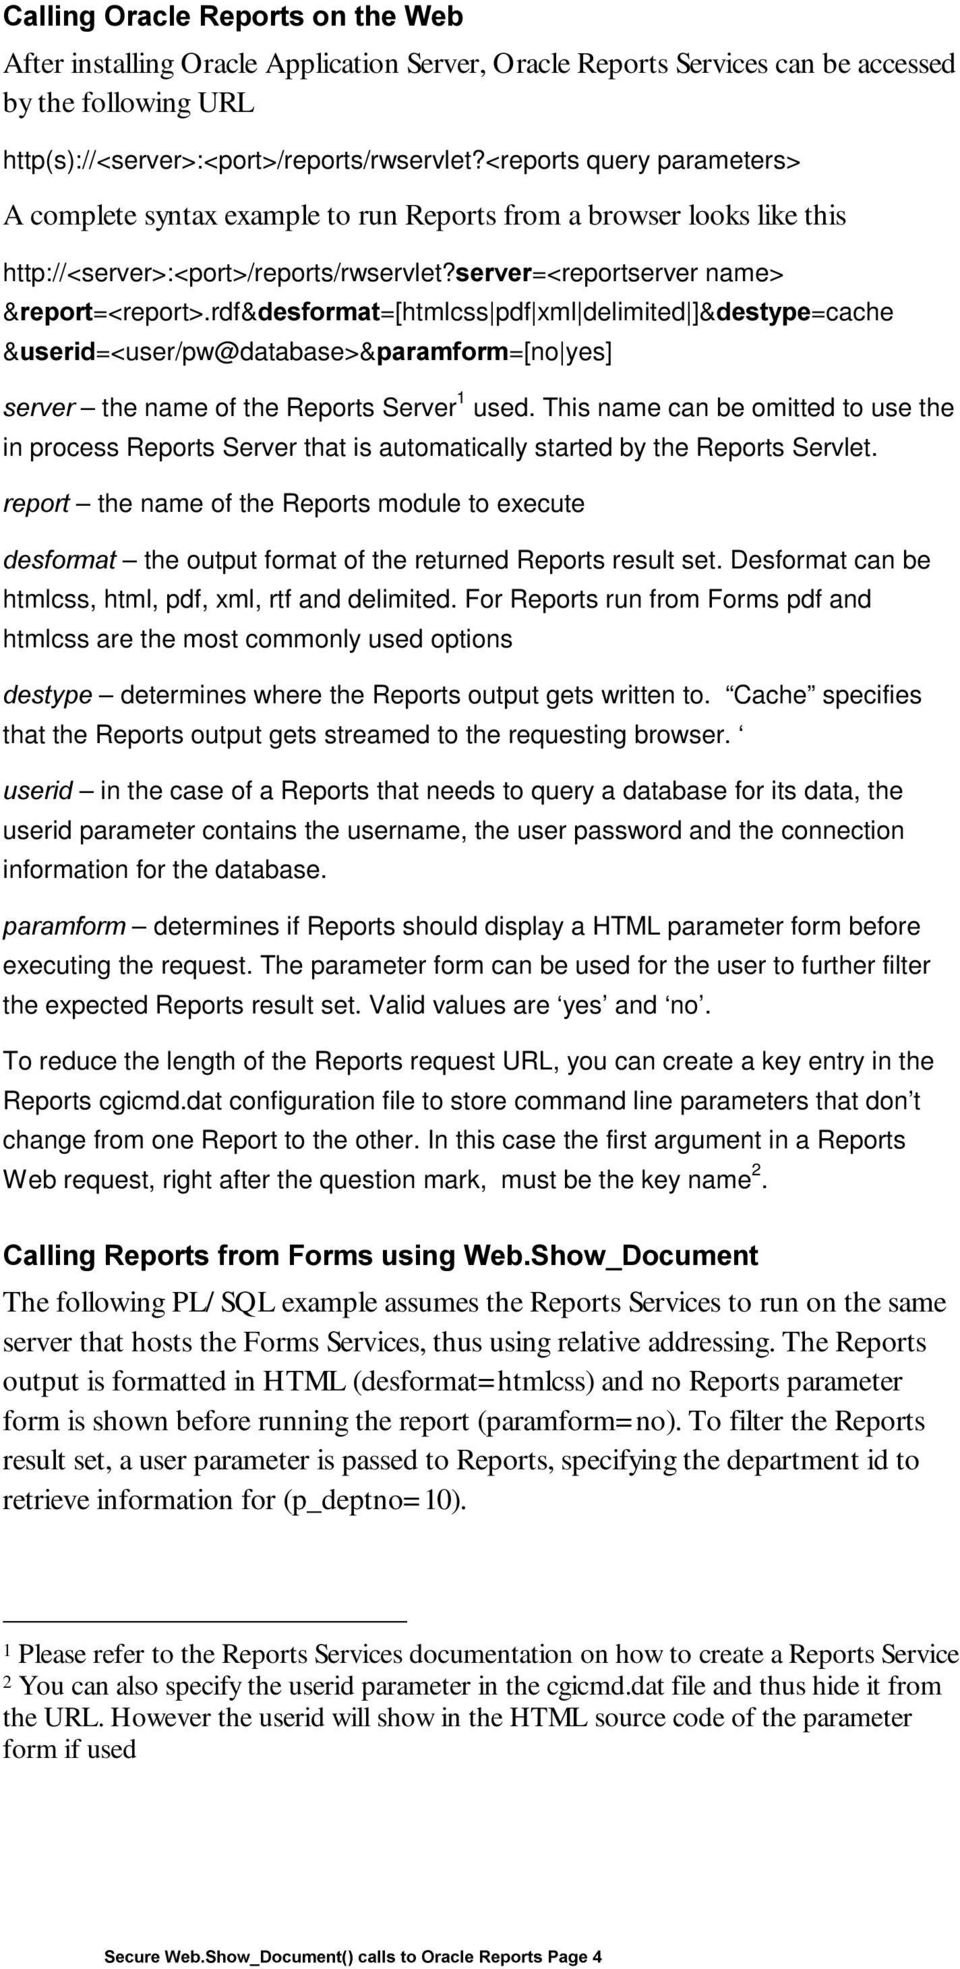 Oracle Forms Services Secure Web Show_Document() calls to